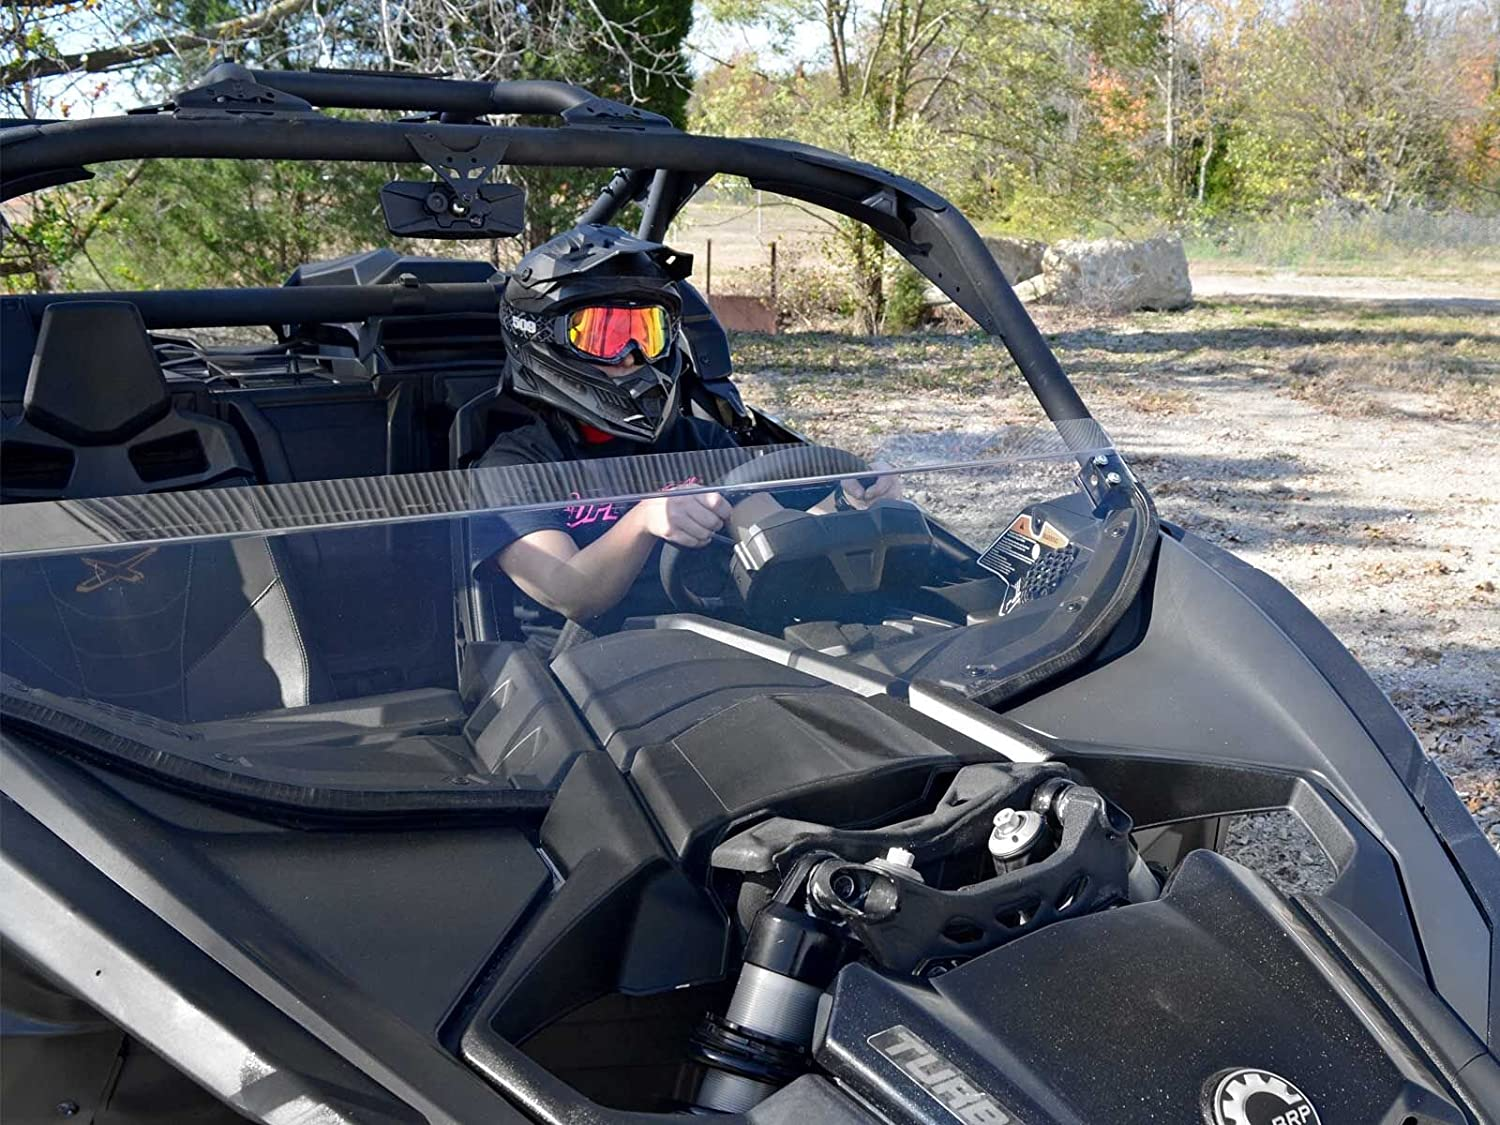 Amazon.com: SuperATV Heavy Duty Half Windshield for Can-Am Maverick X3 900 / Turbo/X RS/X DS/X MR/MAX (2017+) - Clear Standard Polycarbonate: Automotive